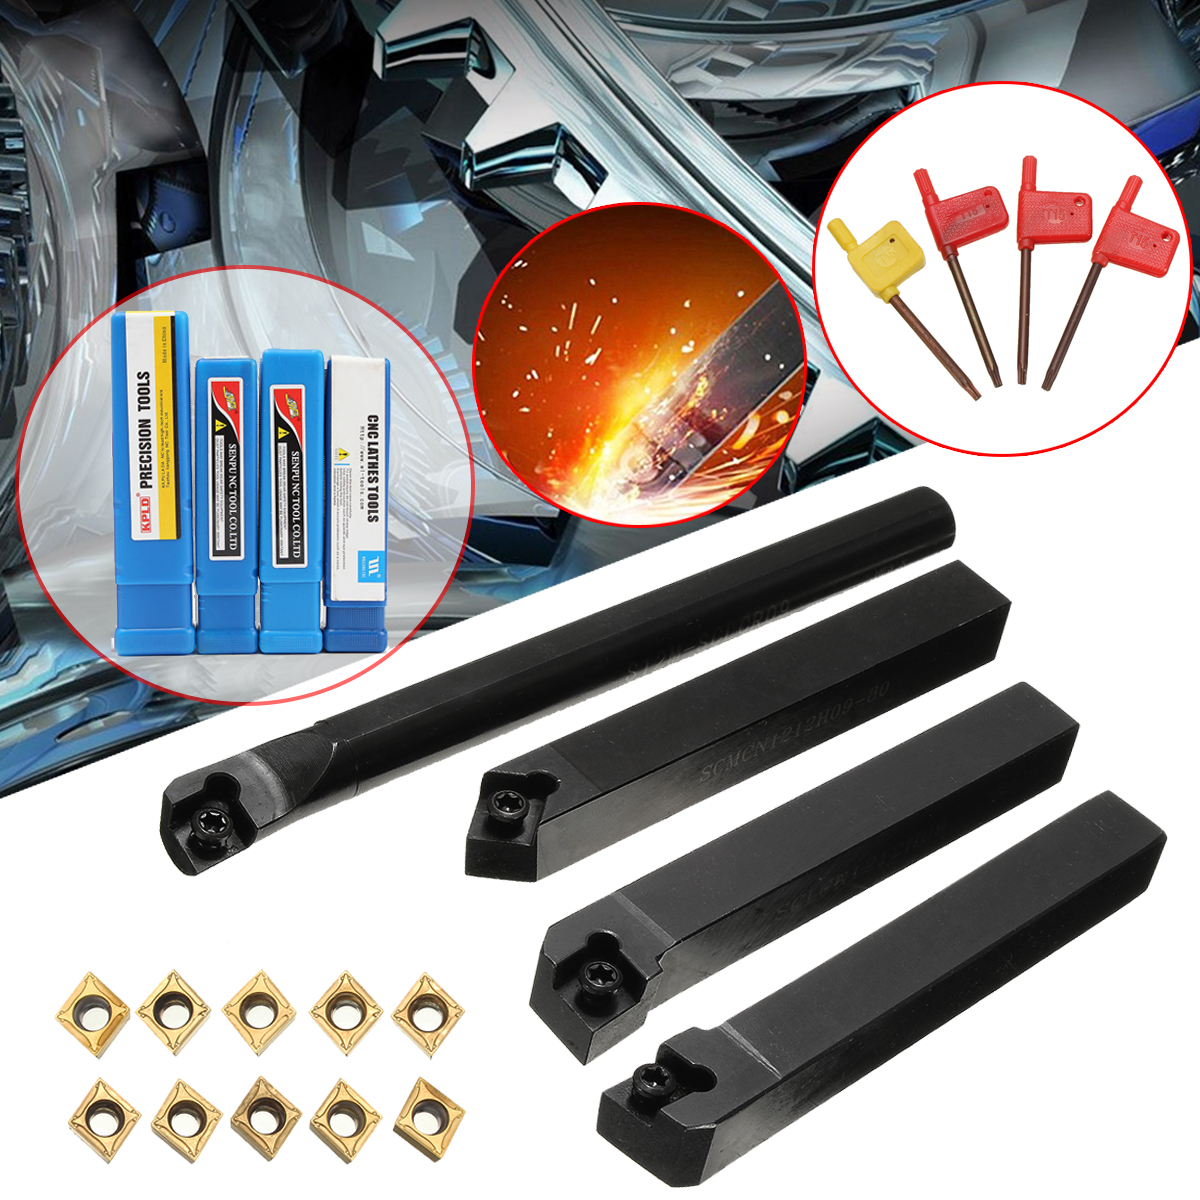 10X CCMT09T304 S12M-SCLCR09+1212H09+SCLCL+SCMCN1212H09 Lathe Turning Tool Holder Set Machine Tools T15 Wrench Carbide Insert Kit